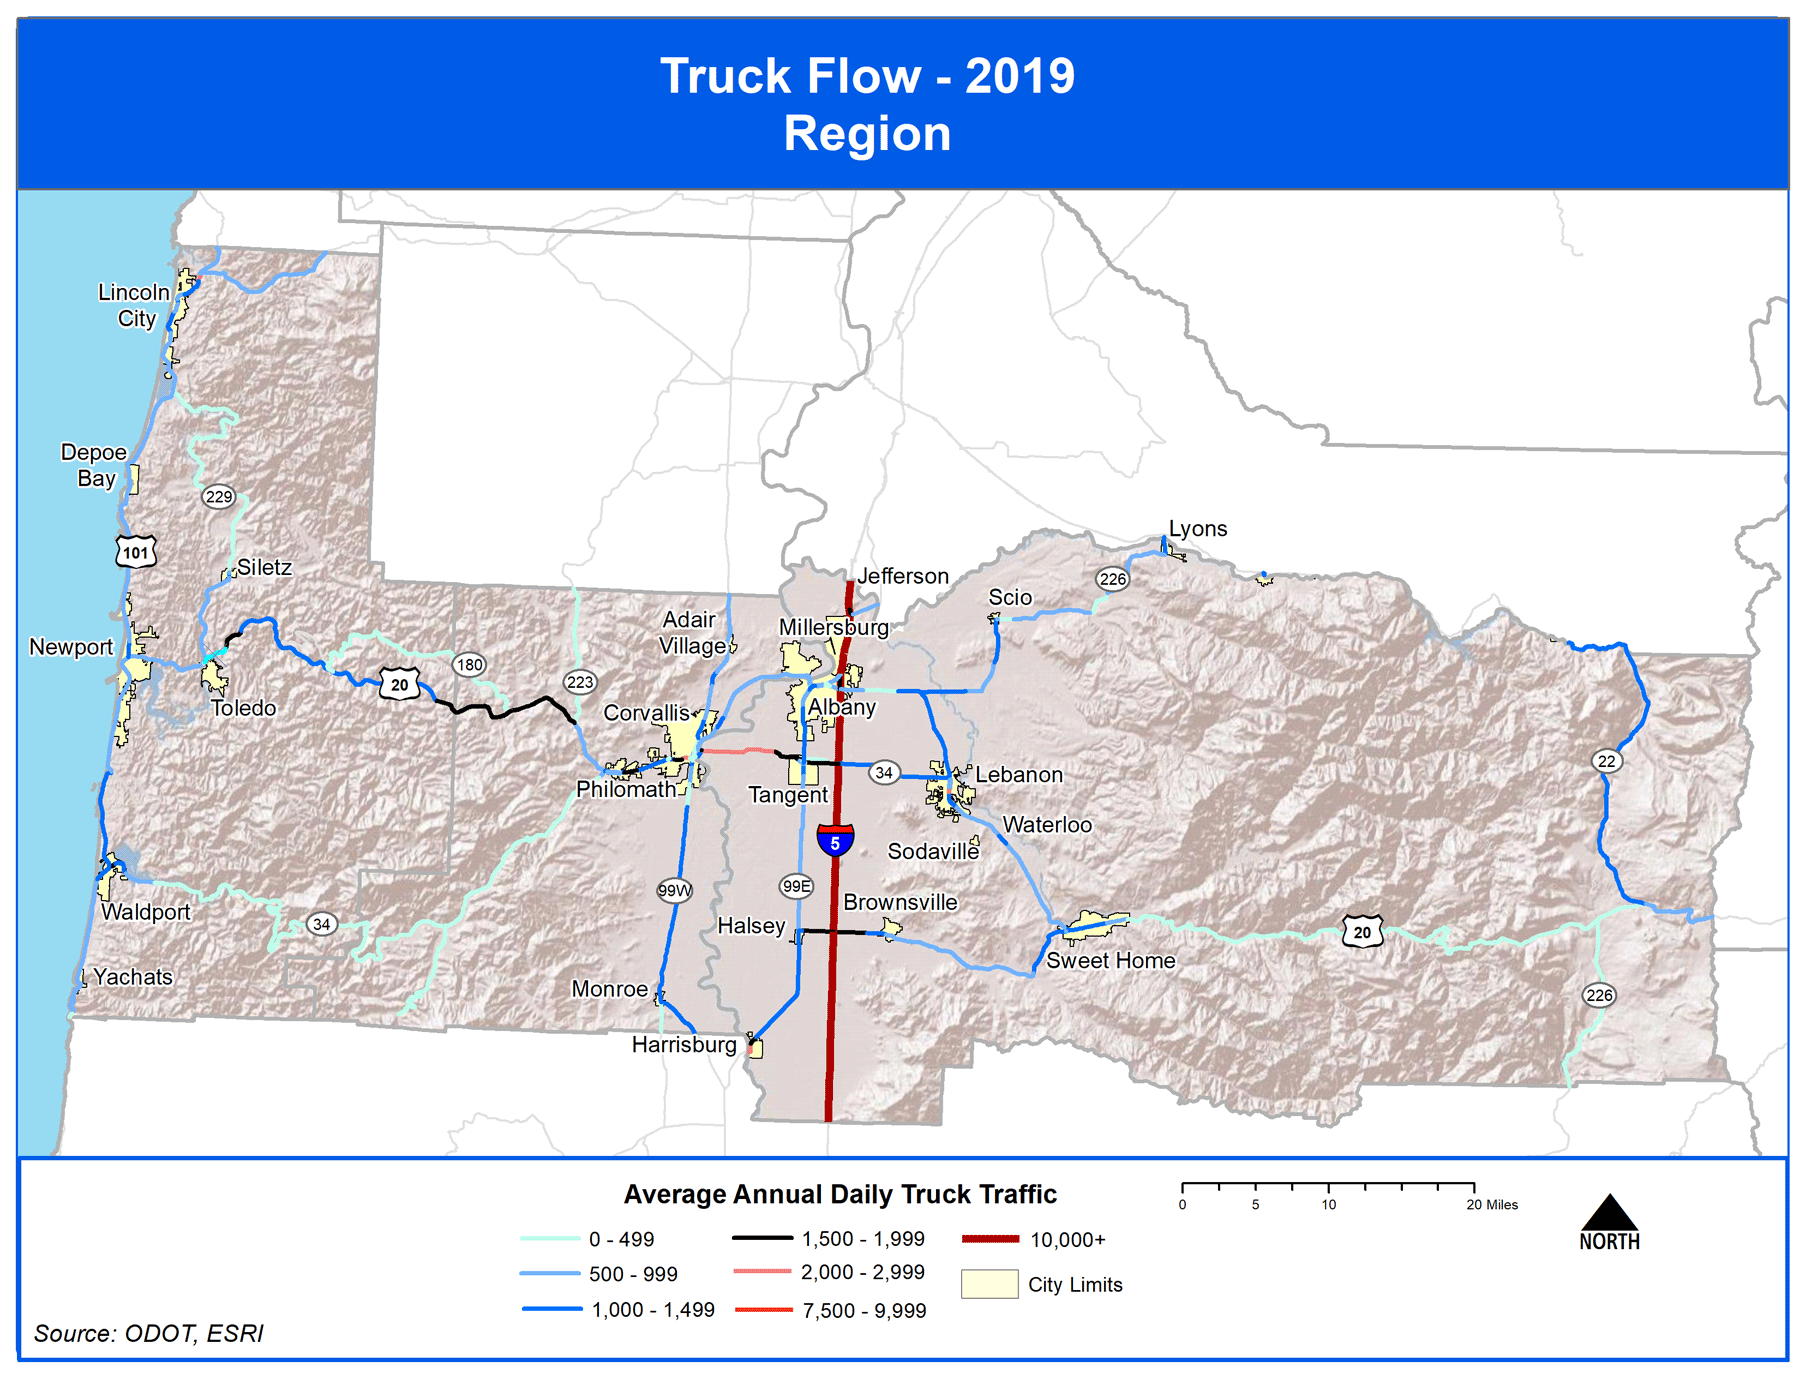 Map of Truck Flow 2019